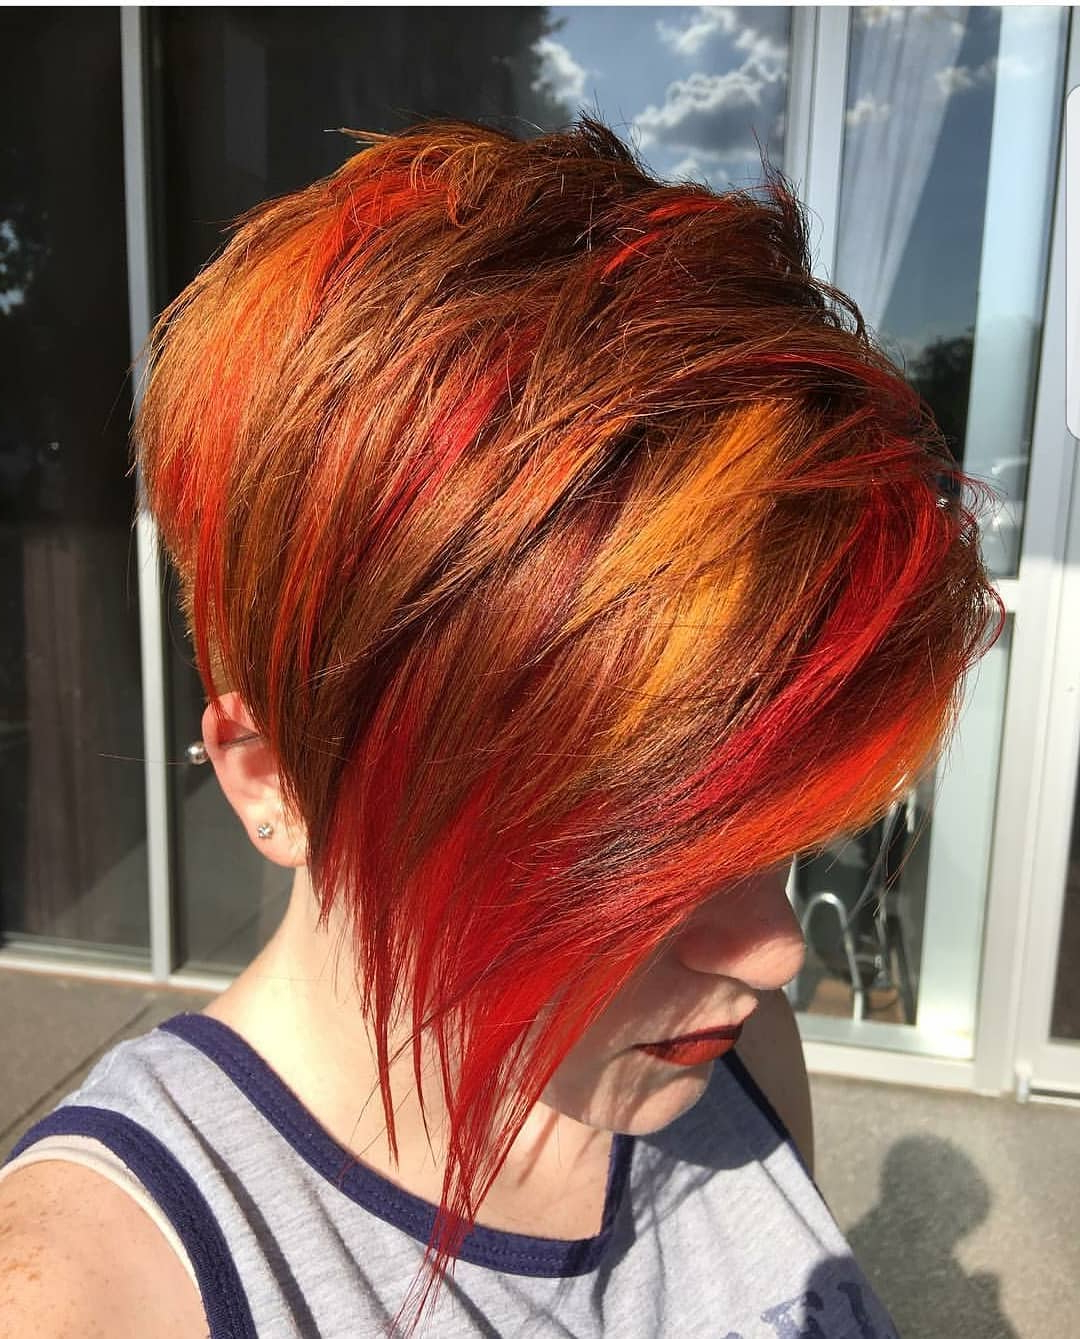 10 Beautiful Asymmetrical Short Pixie Haircuts & Hairstyles, Women For Tapered Brown Pixie Hairstyles With Ginger Curls (View 19 of 25)